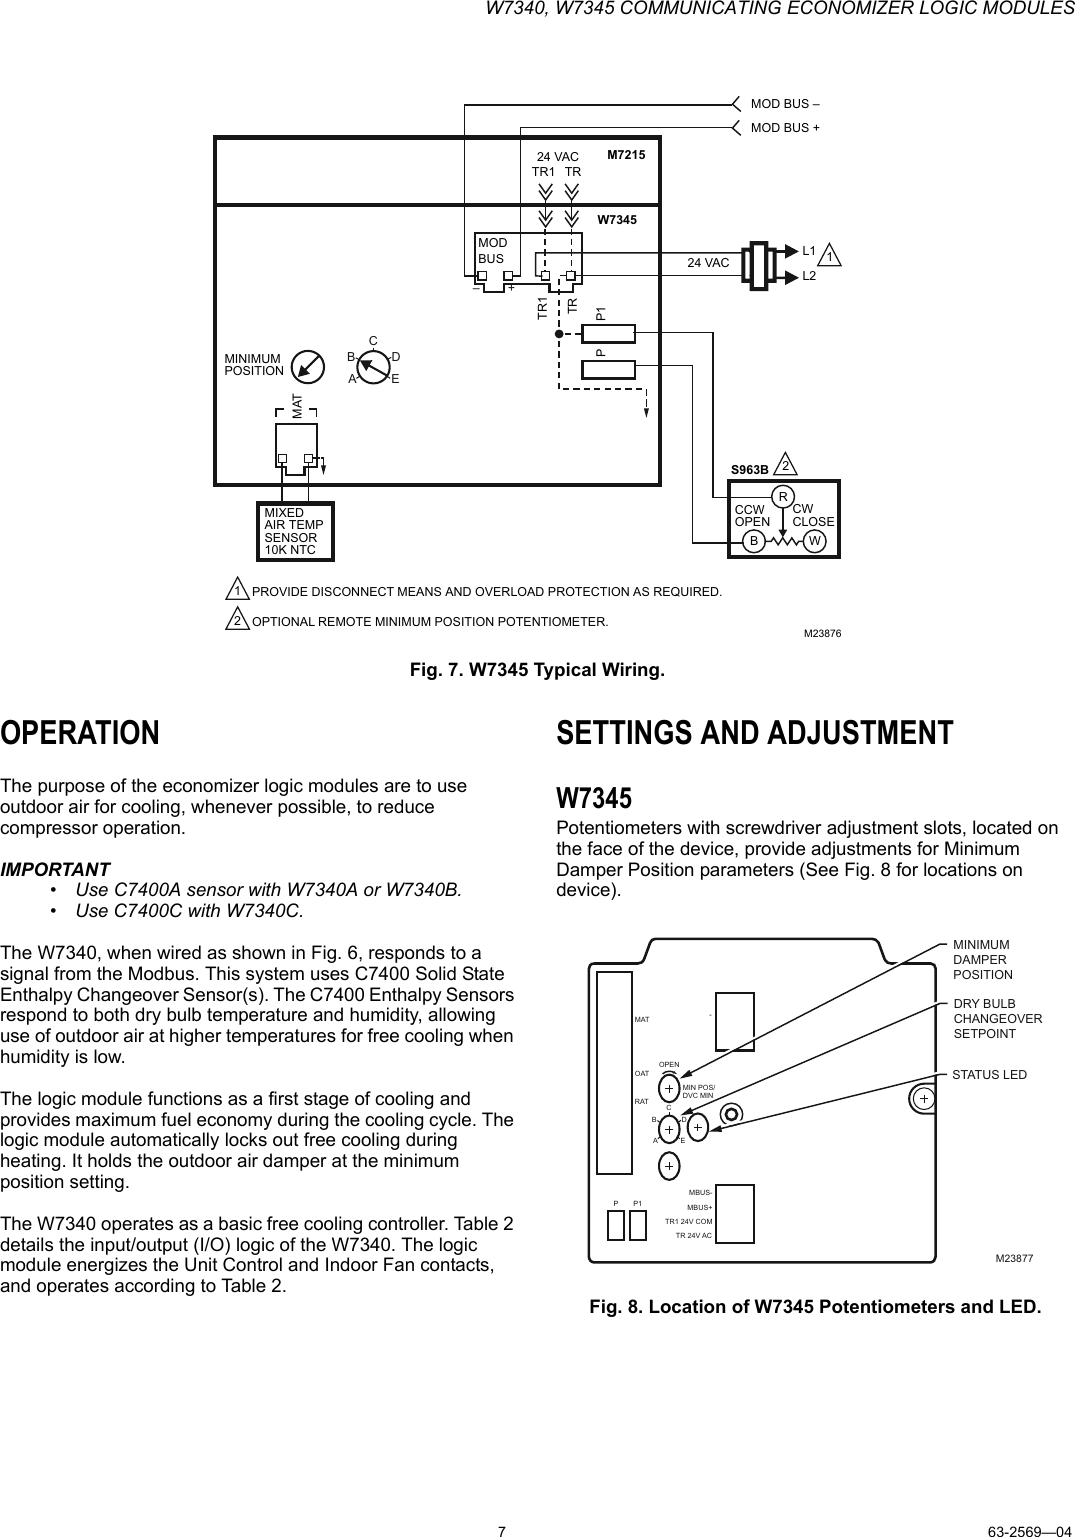 Honeywell W7340 Users Manual 63 2569 4 W7345 Communicating Led Potentiometer Wiring Diagram Page 7 Of 12